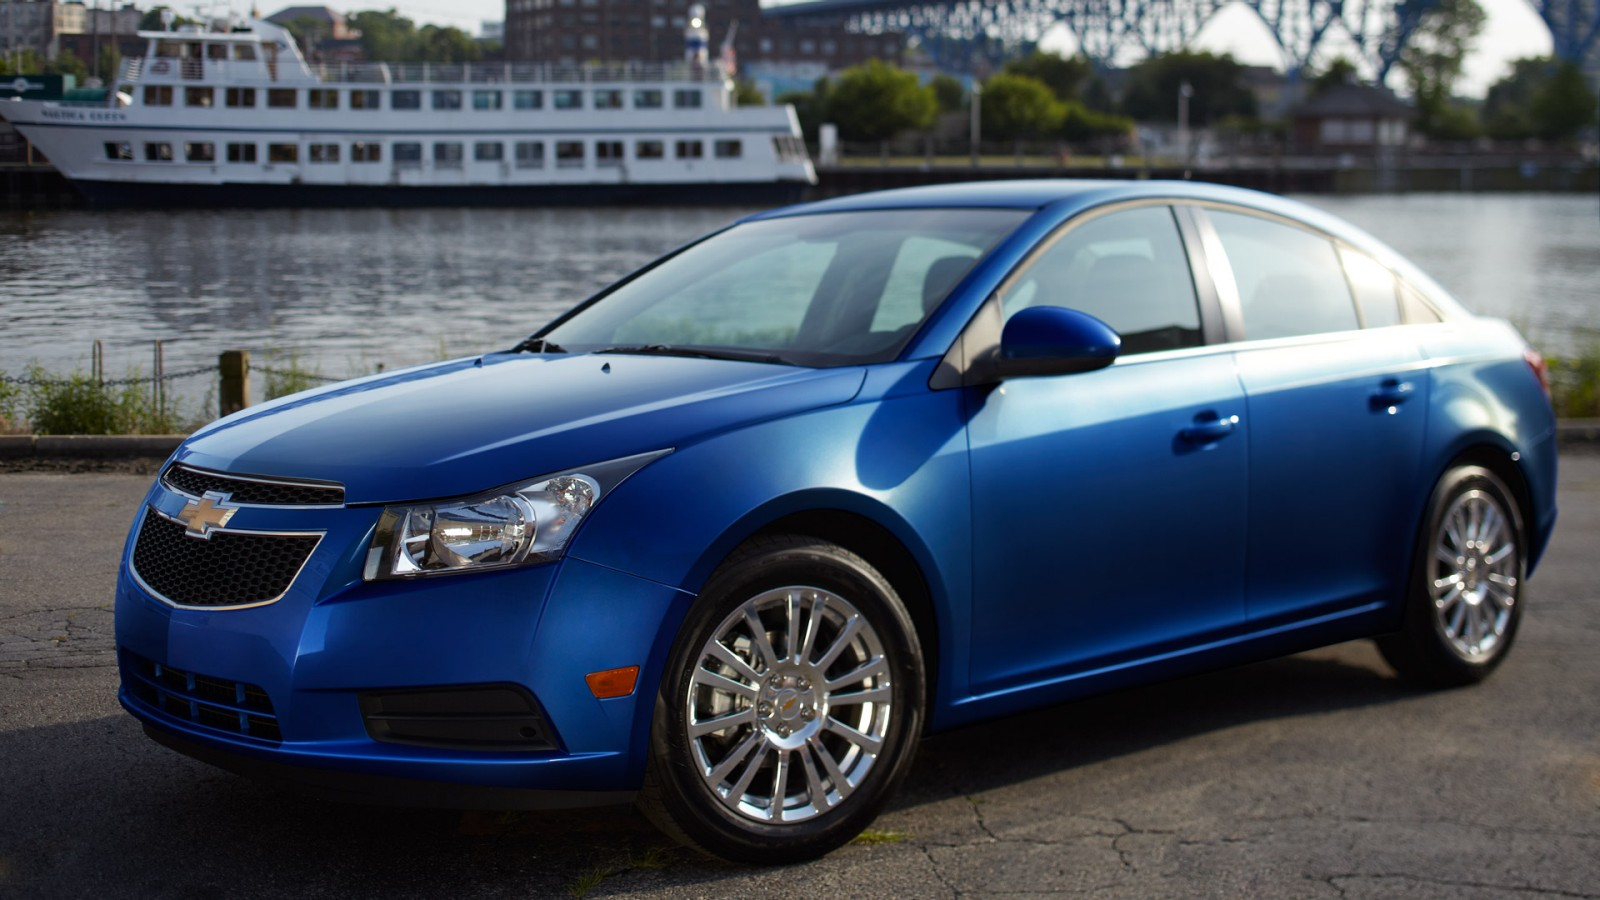 2013 chevrolet cruze eco woos drivers with brains and brawn gaywheels. Black Bedroom Furniture Sets. Home Design Ideas